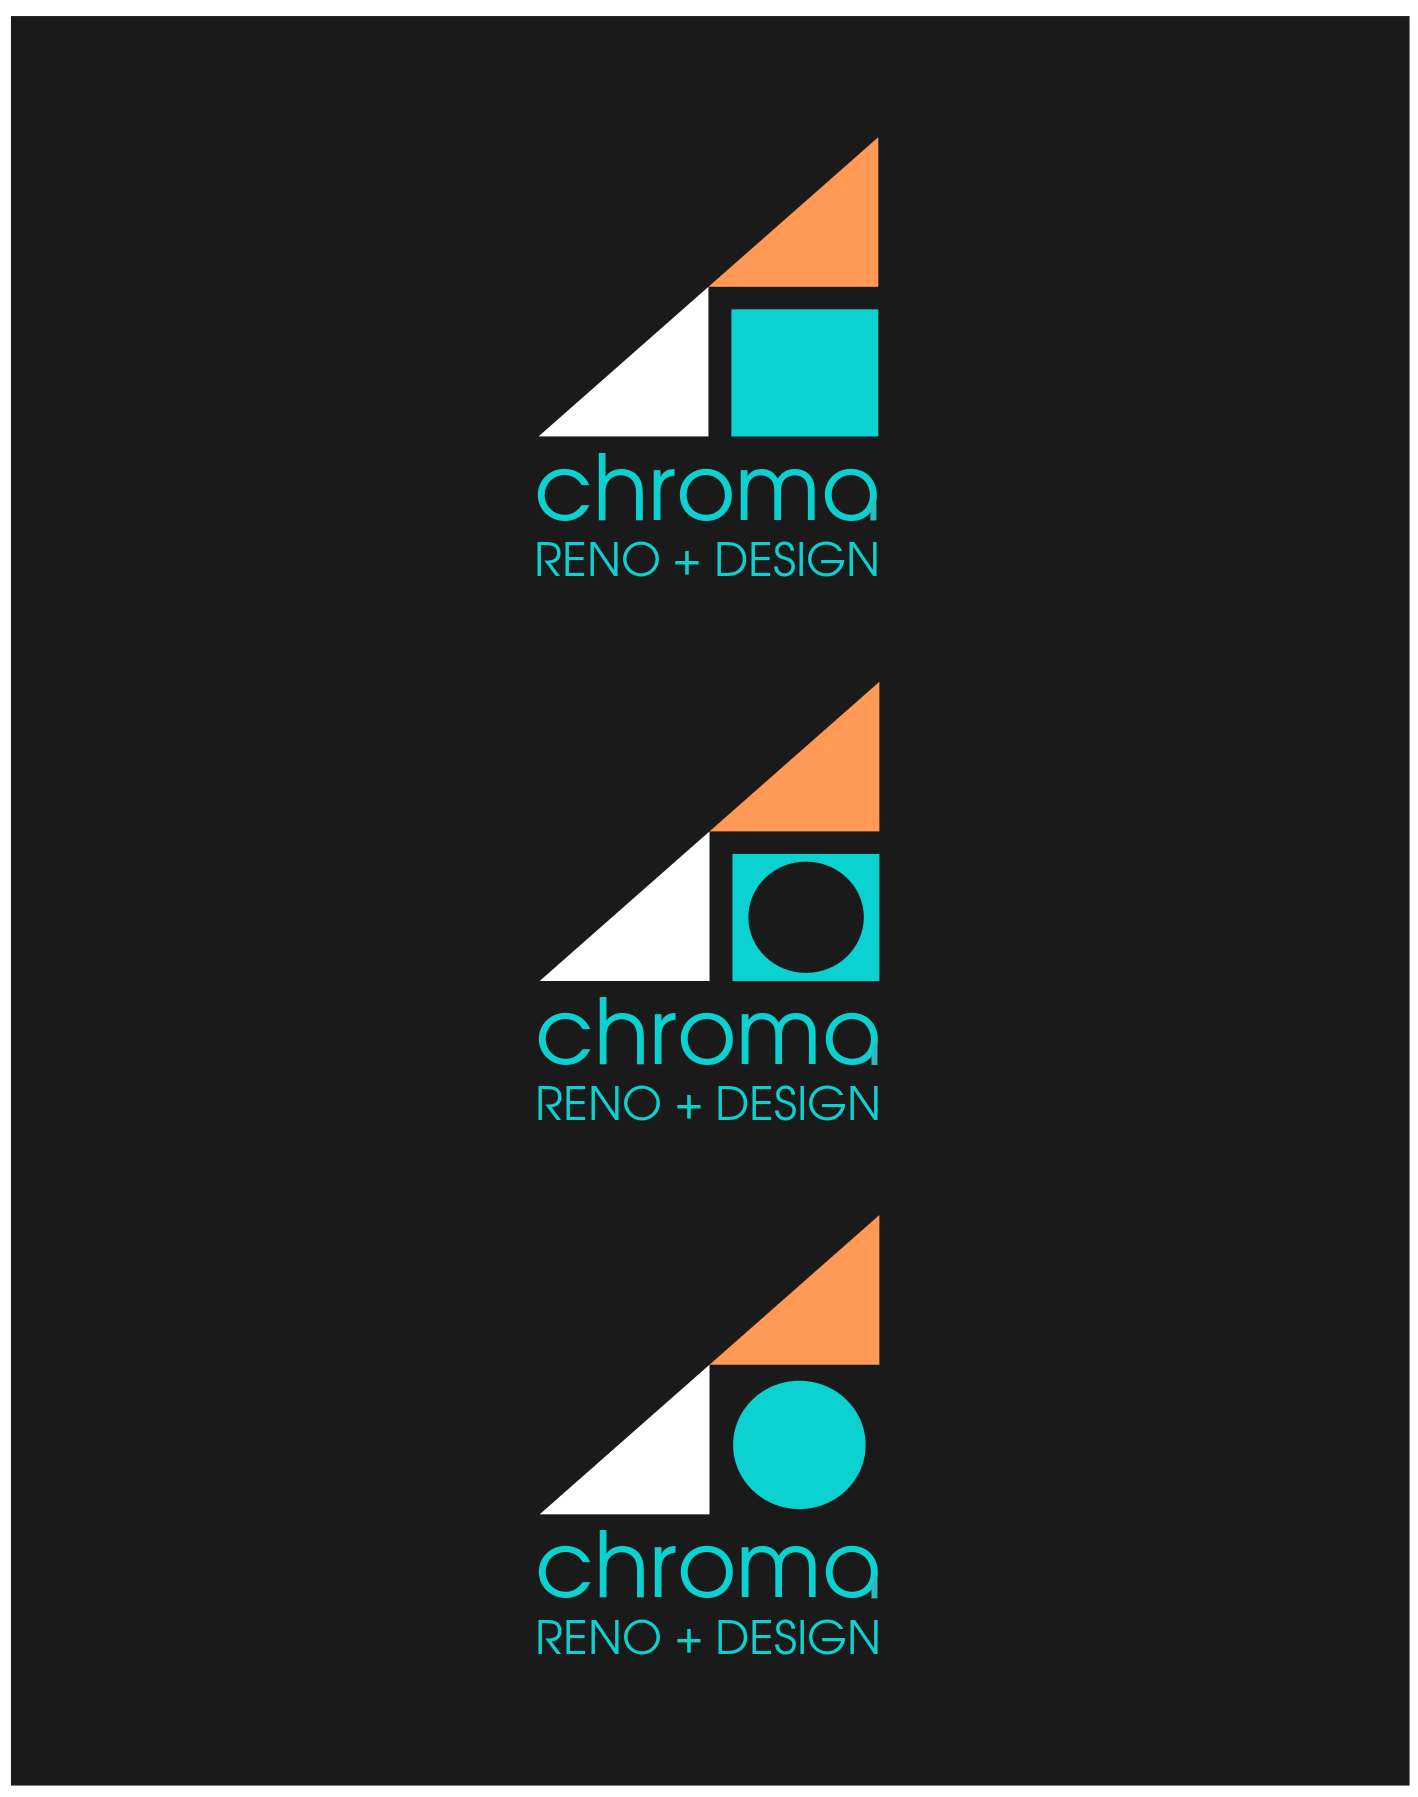 Logo Design by JaroslavProcka - Entry No. 327 in the Logo Design Contest Inspiring Logo Design for Chroma Reno+Design.